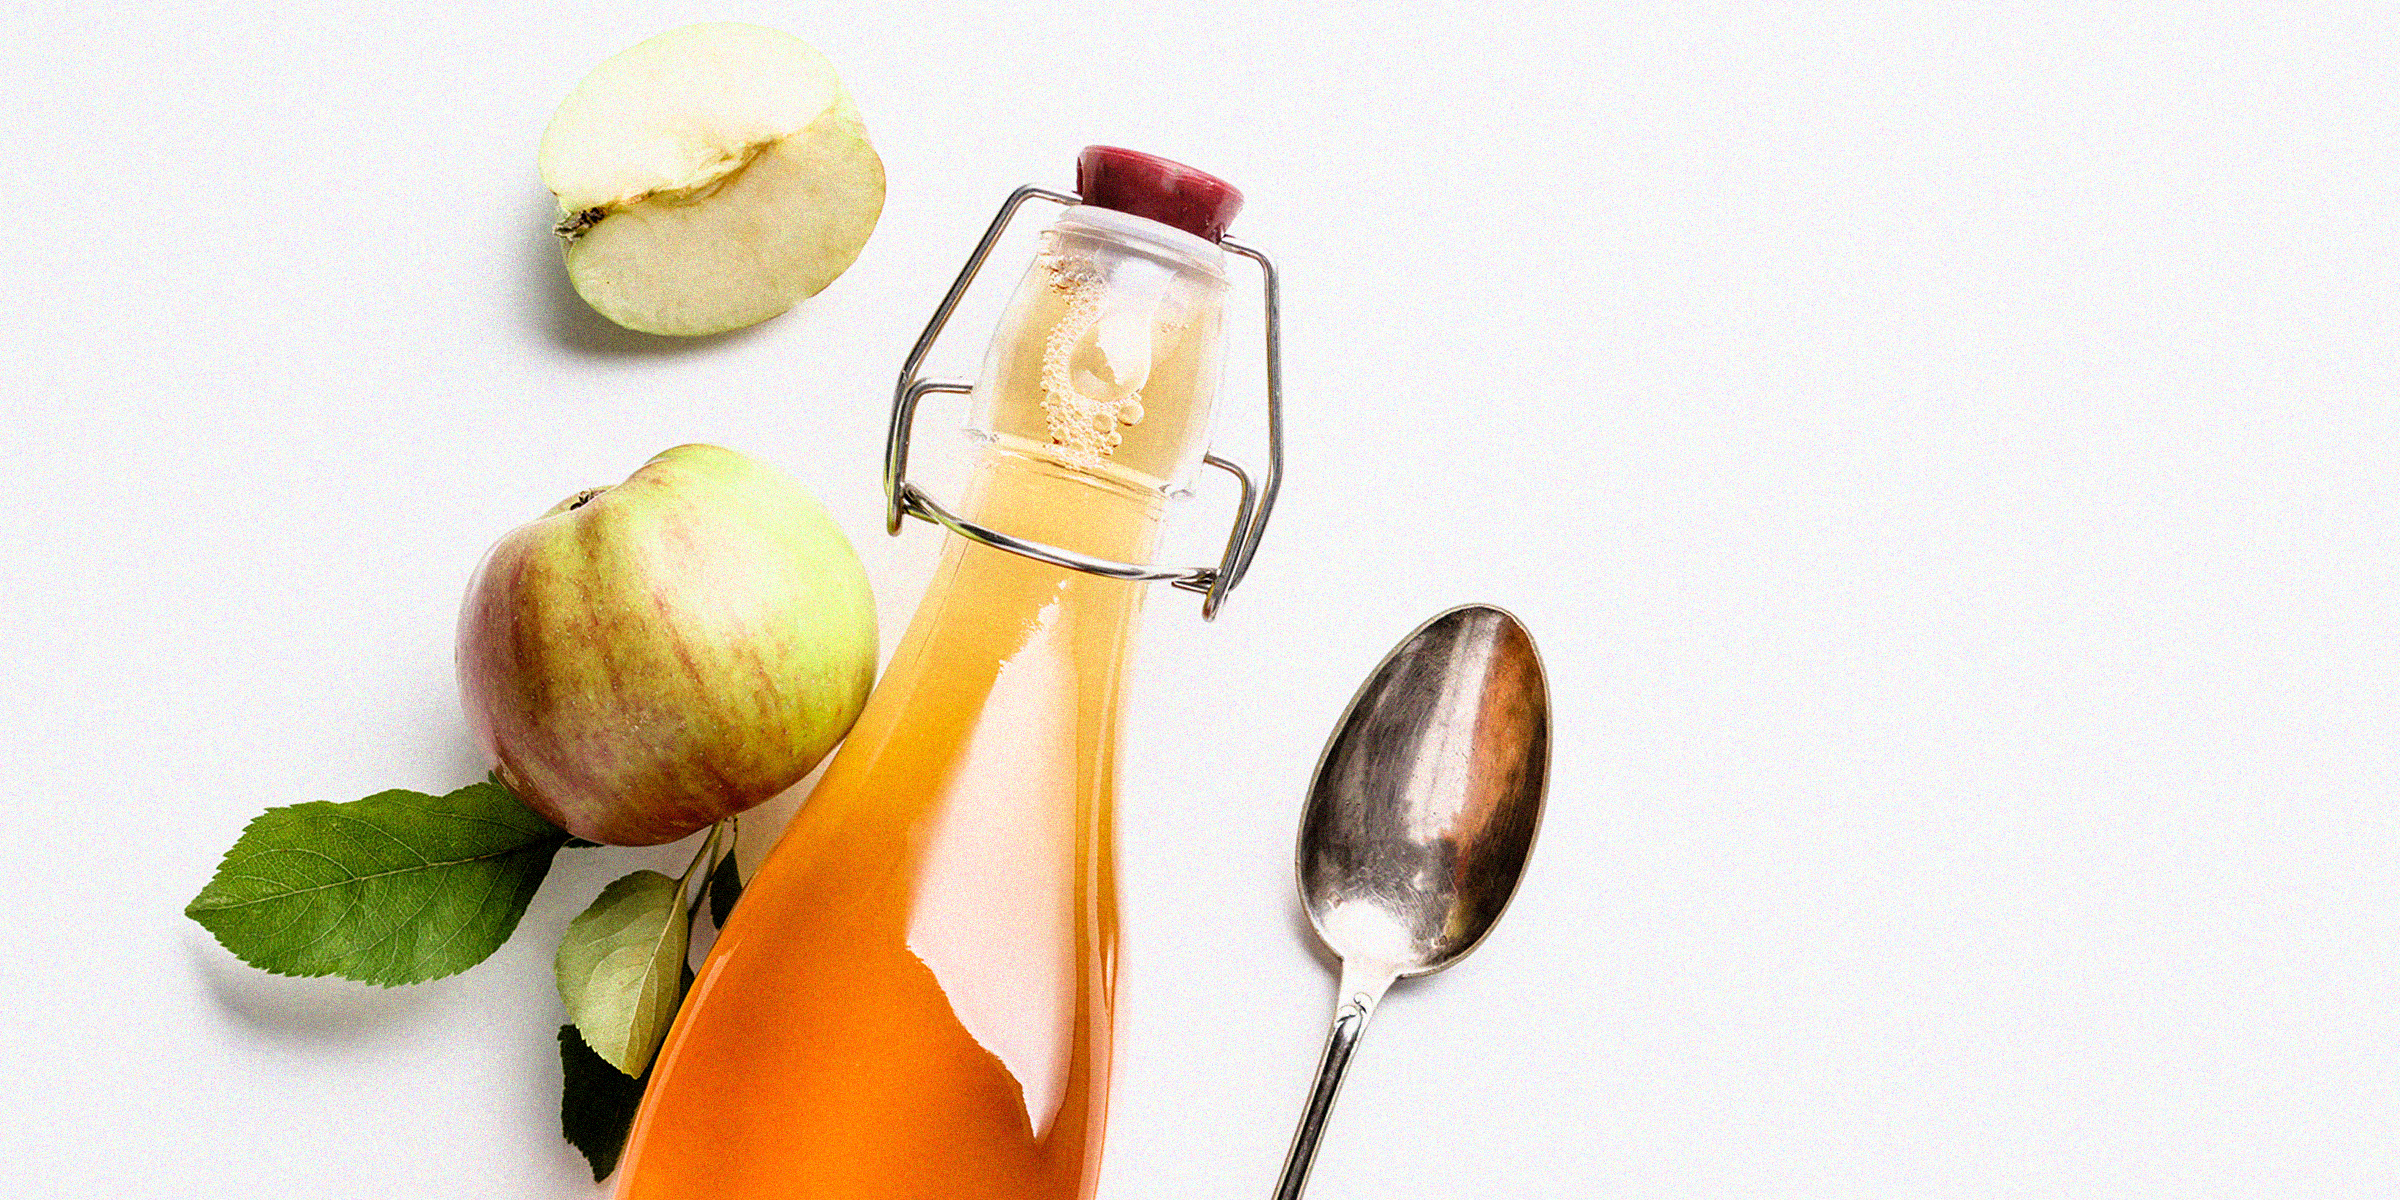 The benefits of apple cider vinegar, according to a dietitian